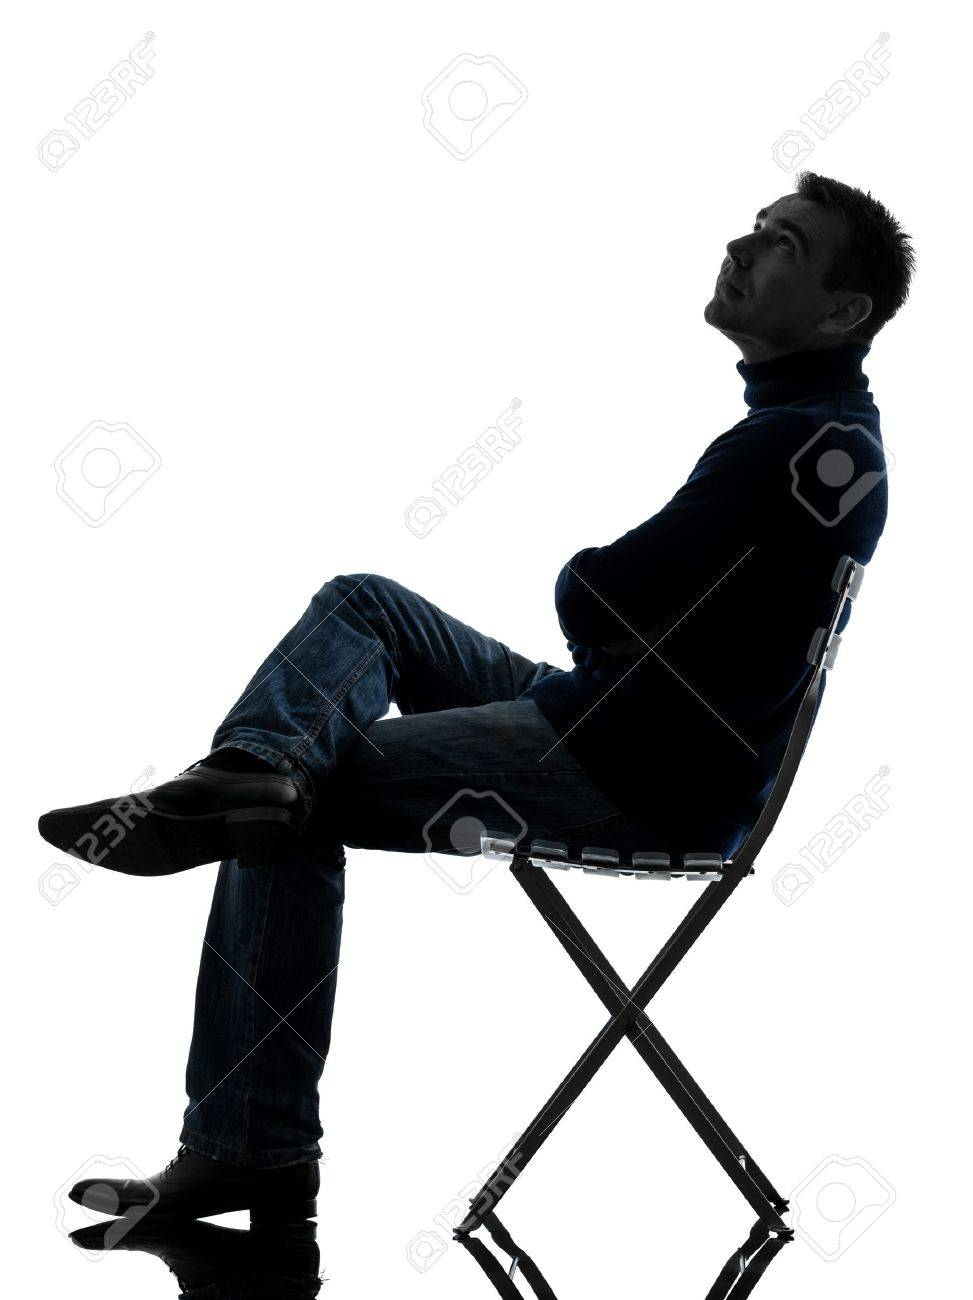 Man sitting in chair side - One Caucasian Man Sitting Looking Up Full Length In Silhouette Studio Isolated On White Background Stock